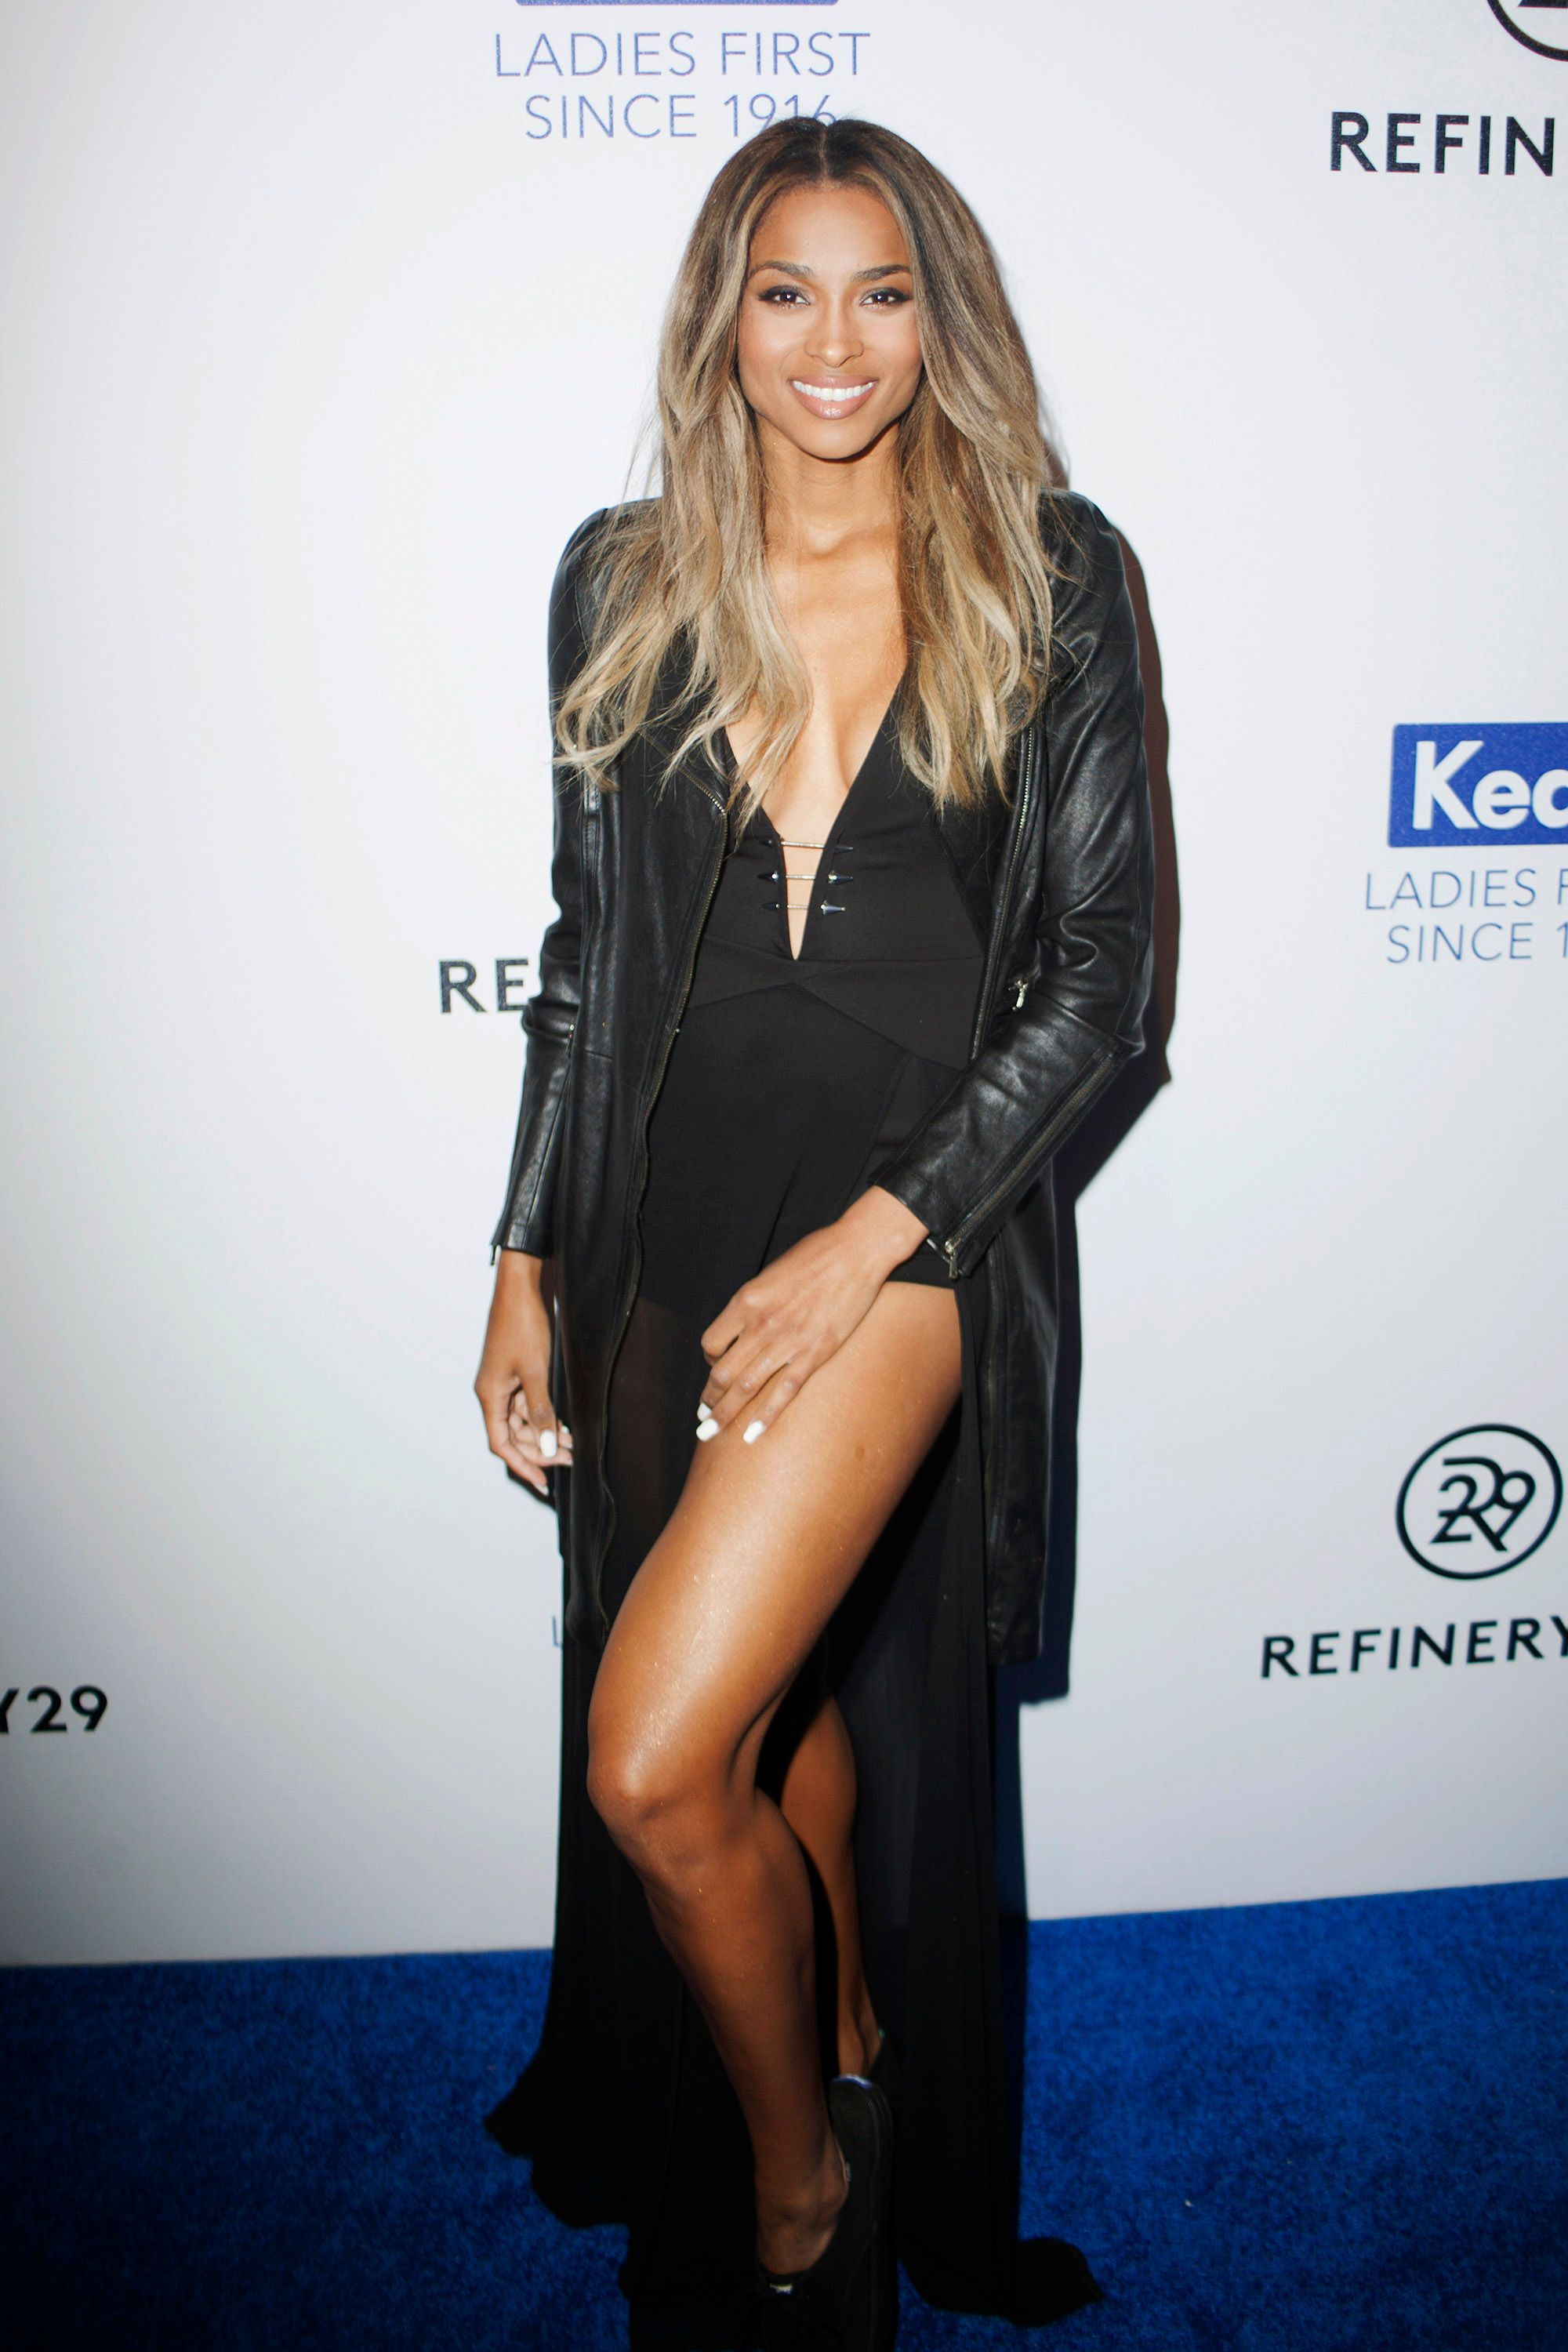 Singer Ciara at the Keds Centennial Celebration in New York on February 10, 2016.   Photo: Getty Images